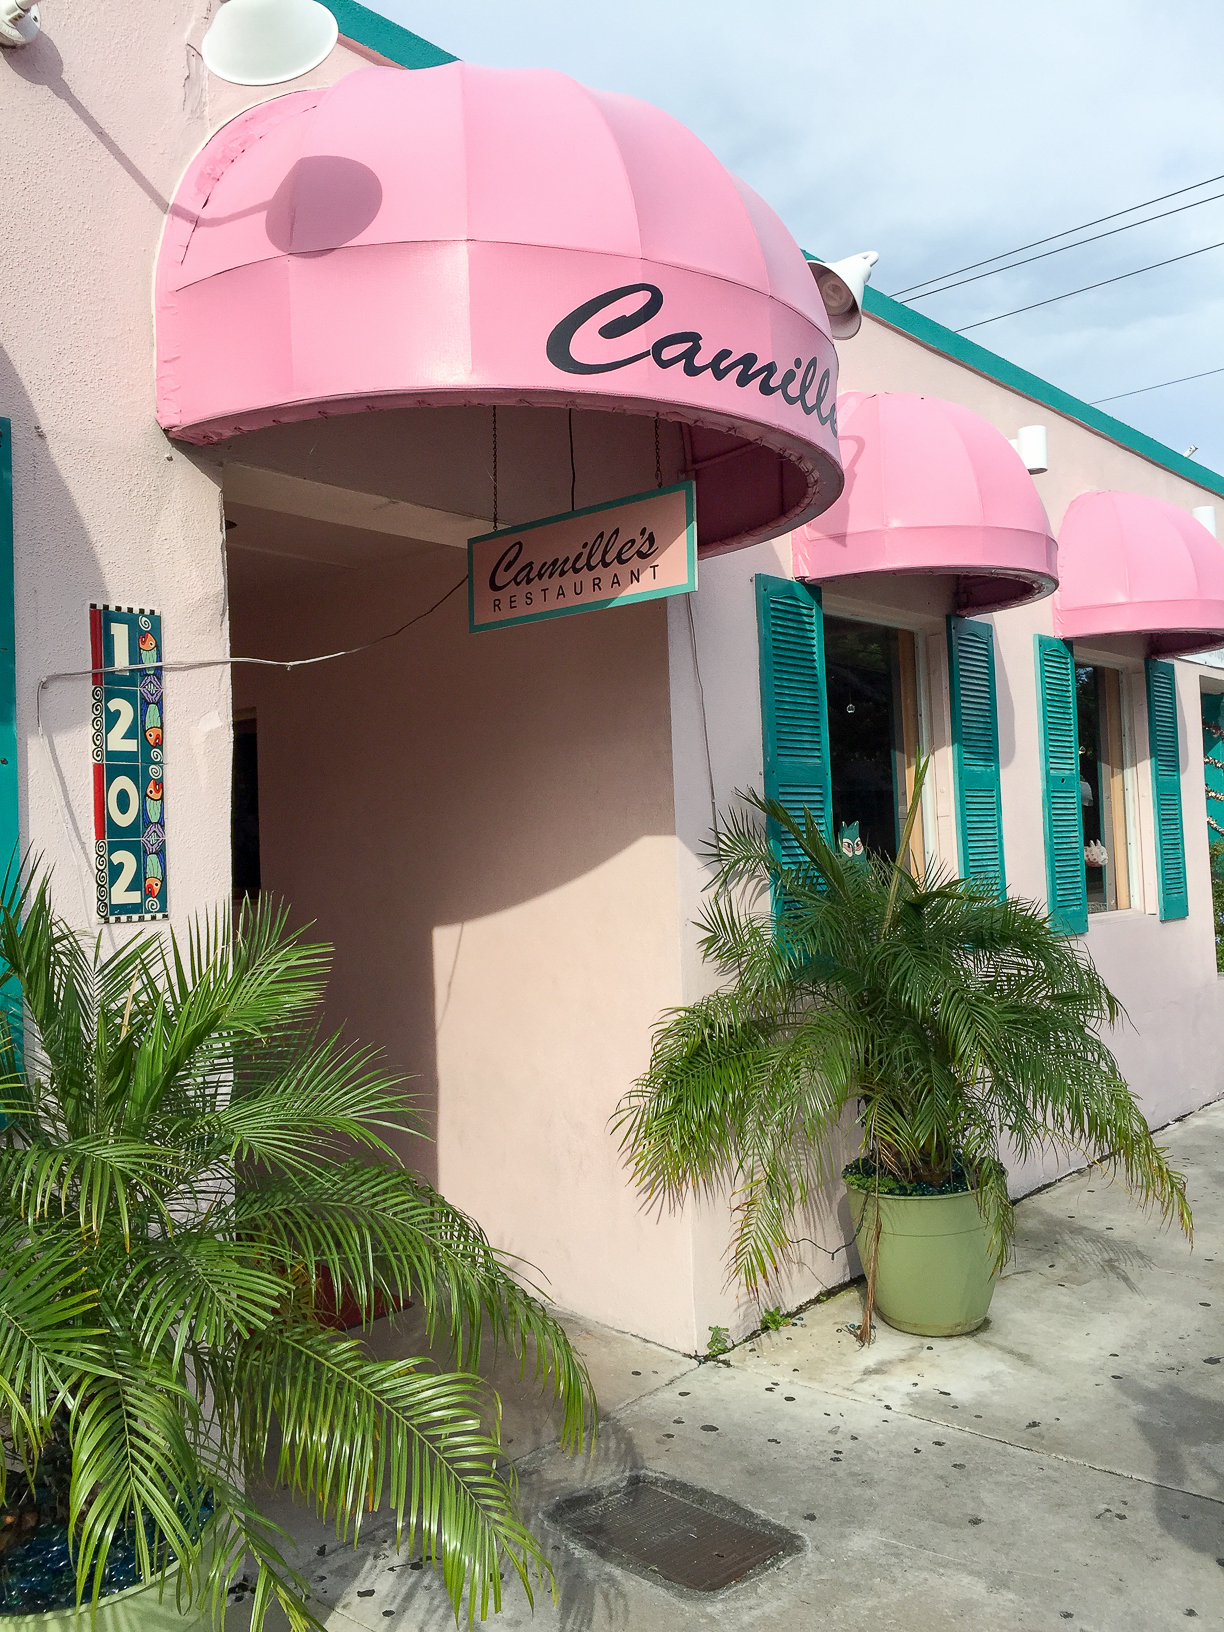 Bucket List Travel Destination: Key West Florida Where to Eat - Camille's Restaurant // thislilpiglet.net